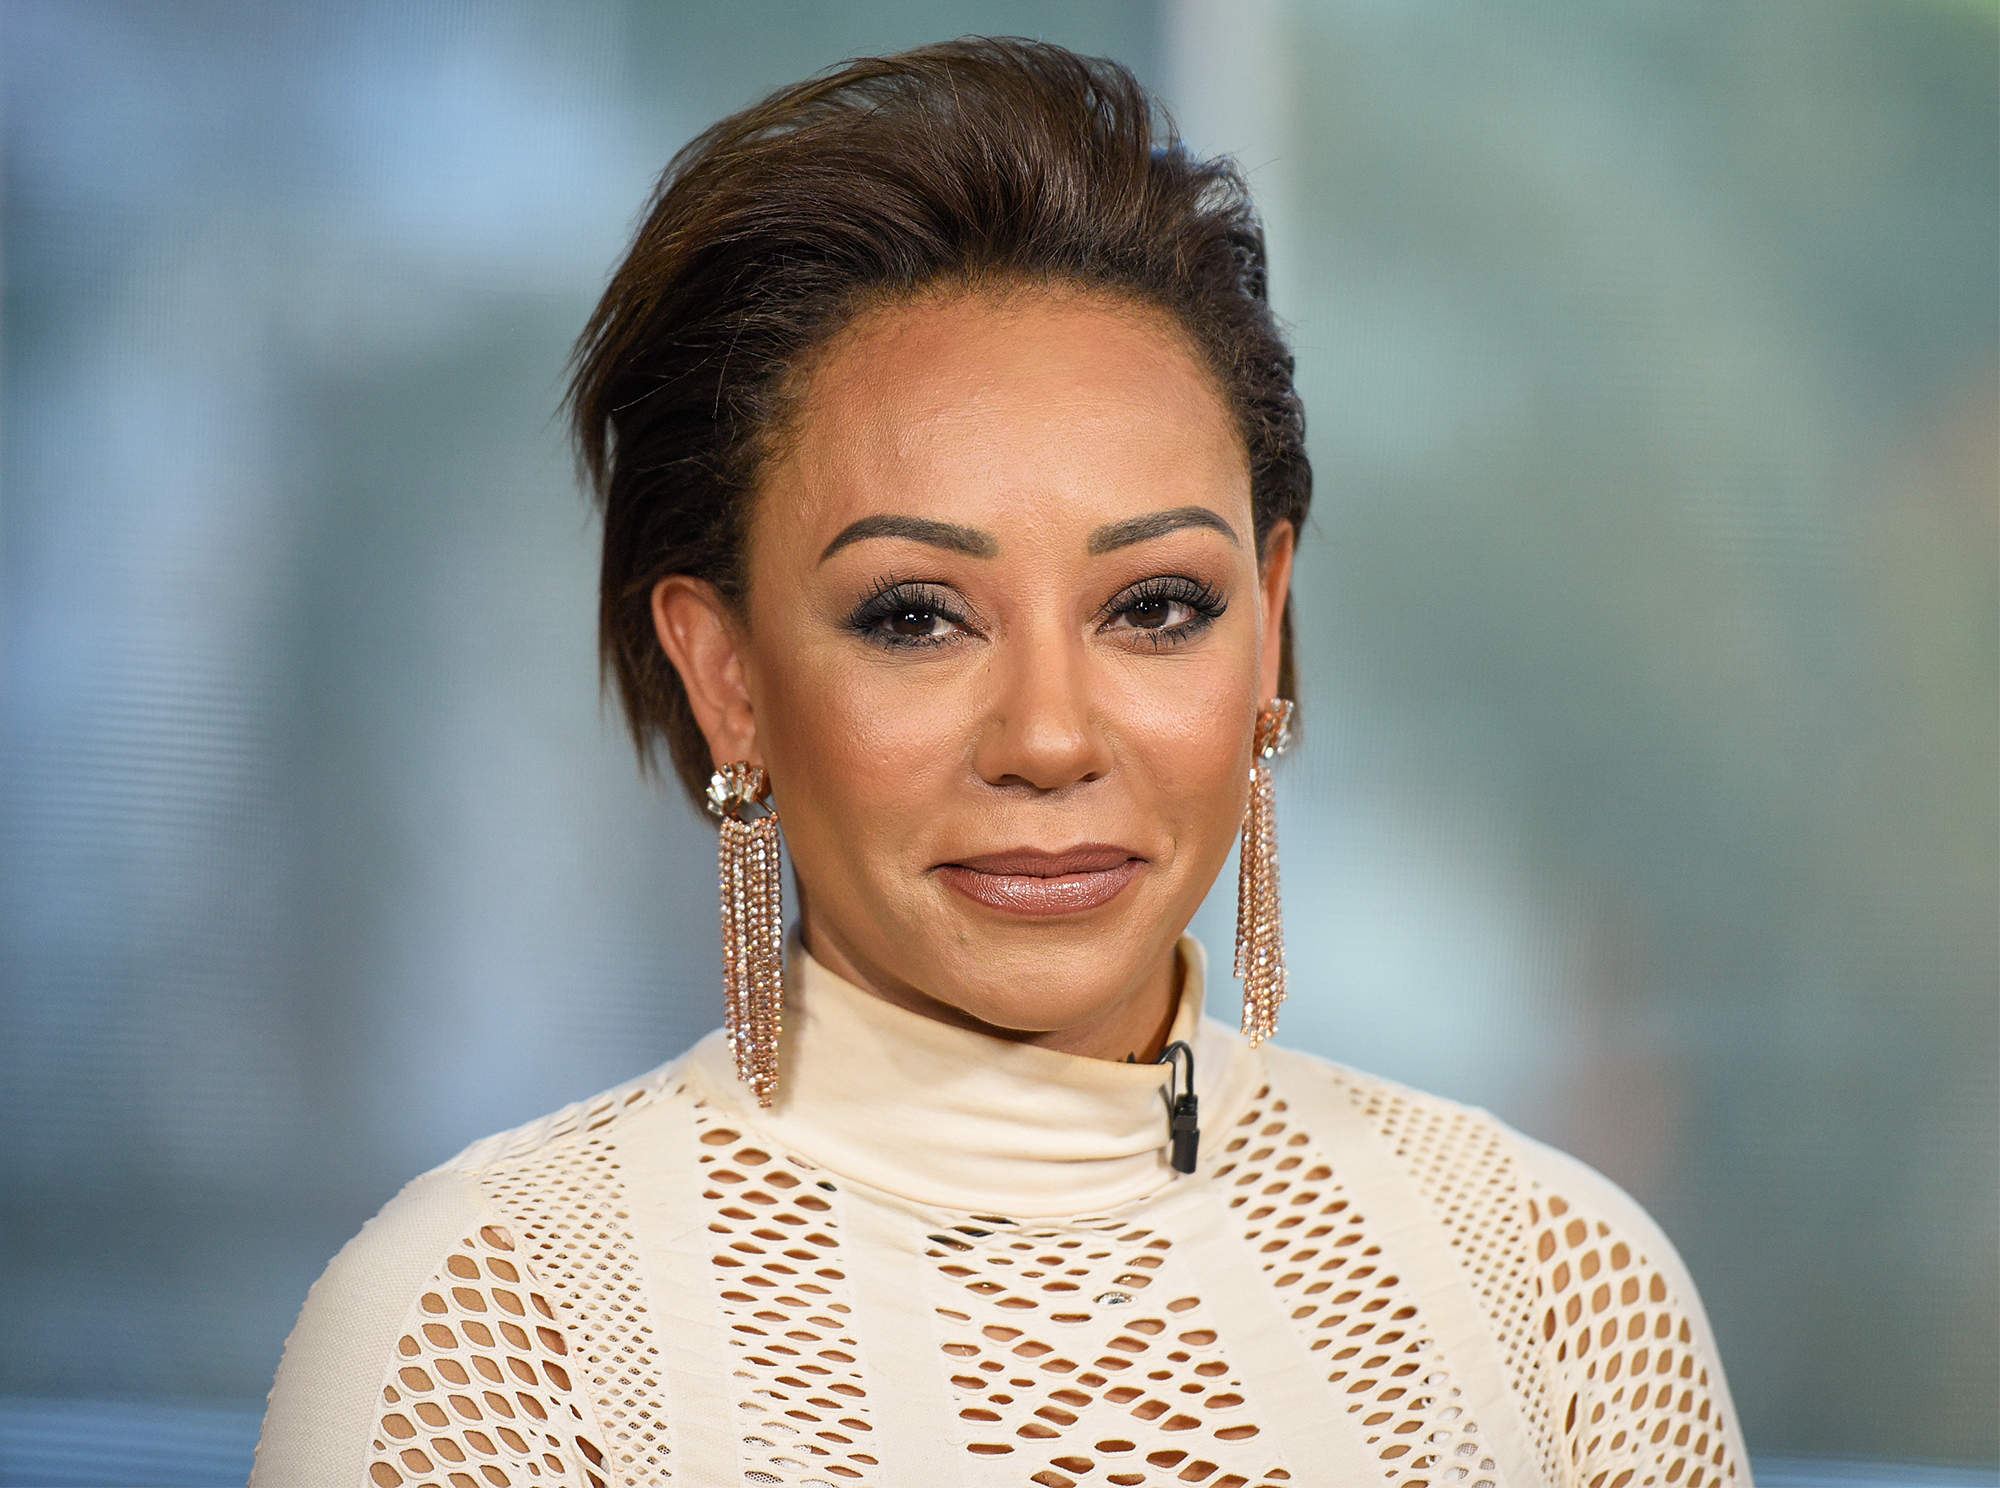 Mel B Speaks Out After Temporarily Going Blind in One Eye from Herpes